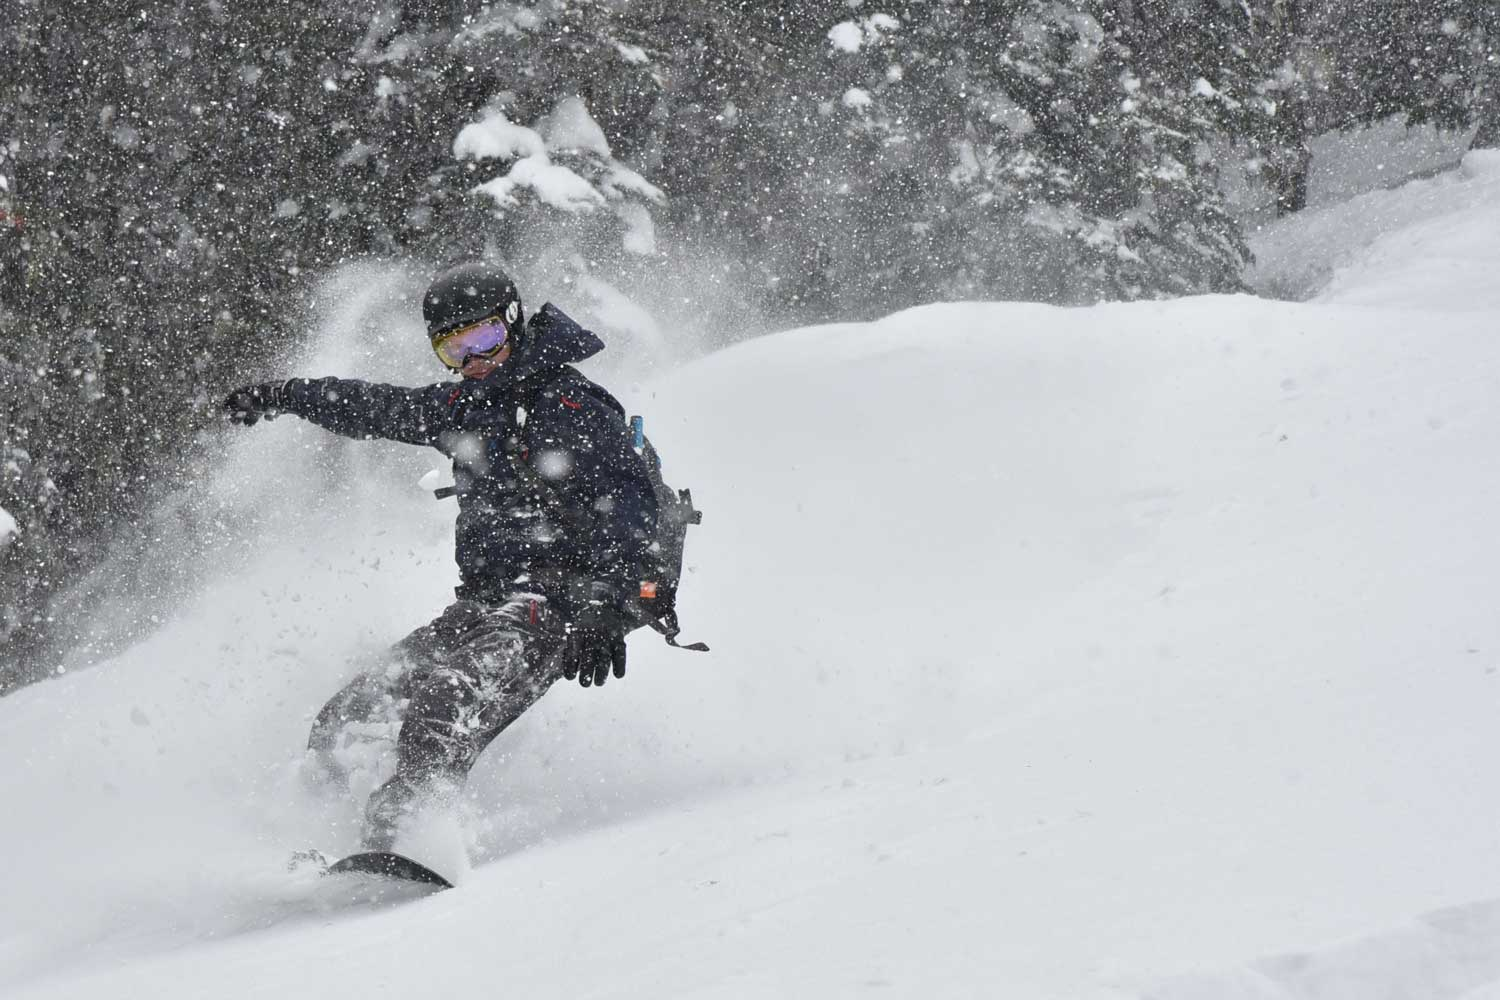 Powder turns during a Canada ski/ snowboard tour